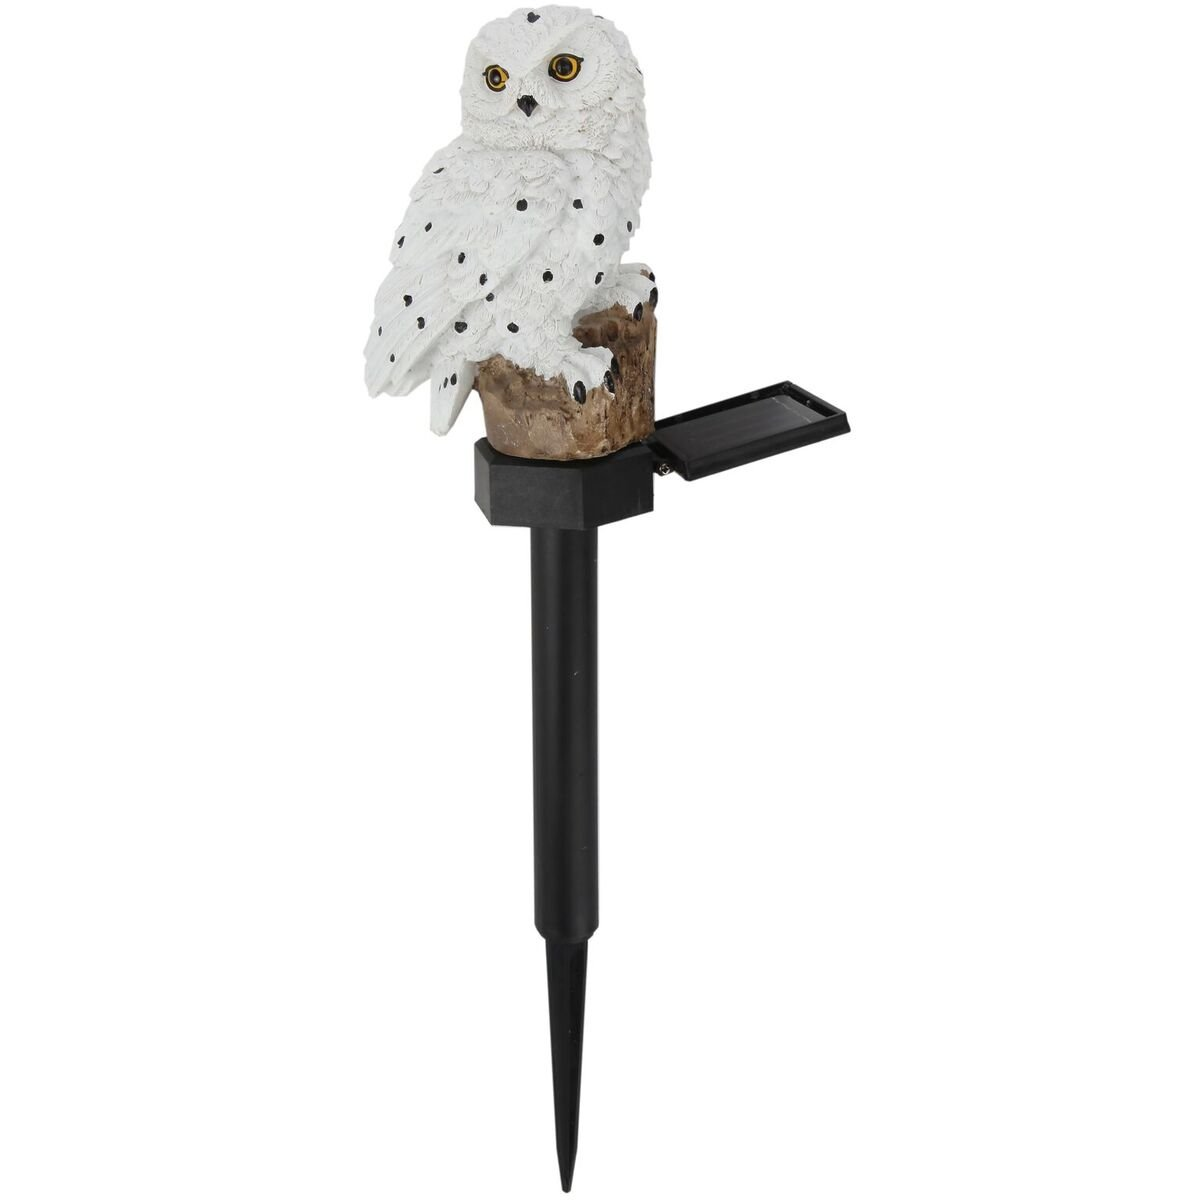 Trenton Gifts Weather Resistant Outdoor LED Solar Owl Light, Garden Stake | White by Trenton Gifts (Image #4)